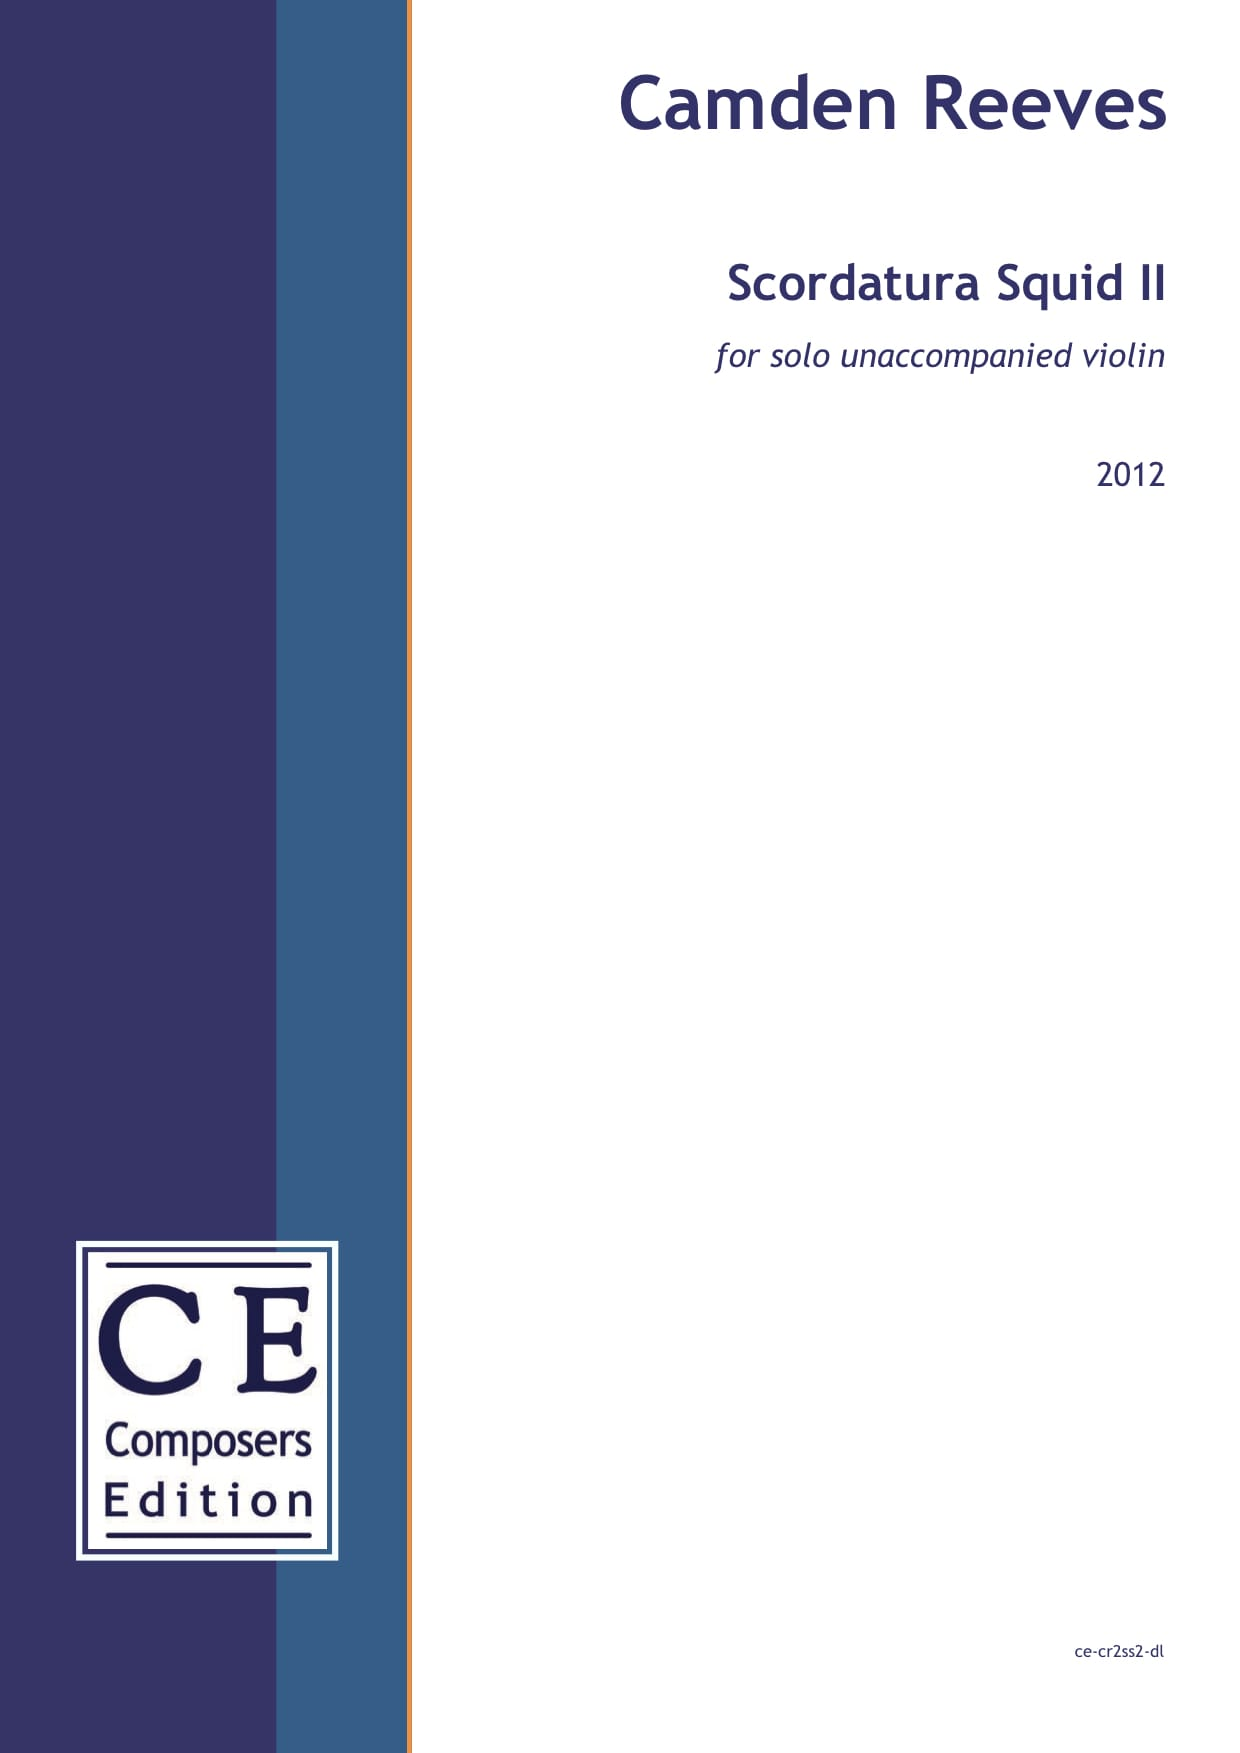 Camden Reeves: Scordatura Squid II for solo unaccompanied violin